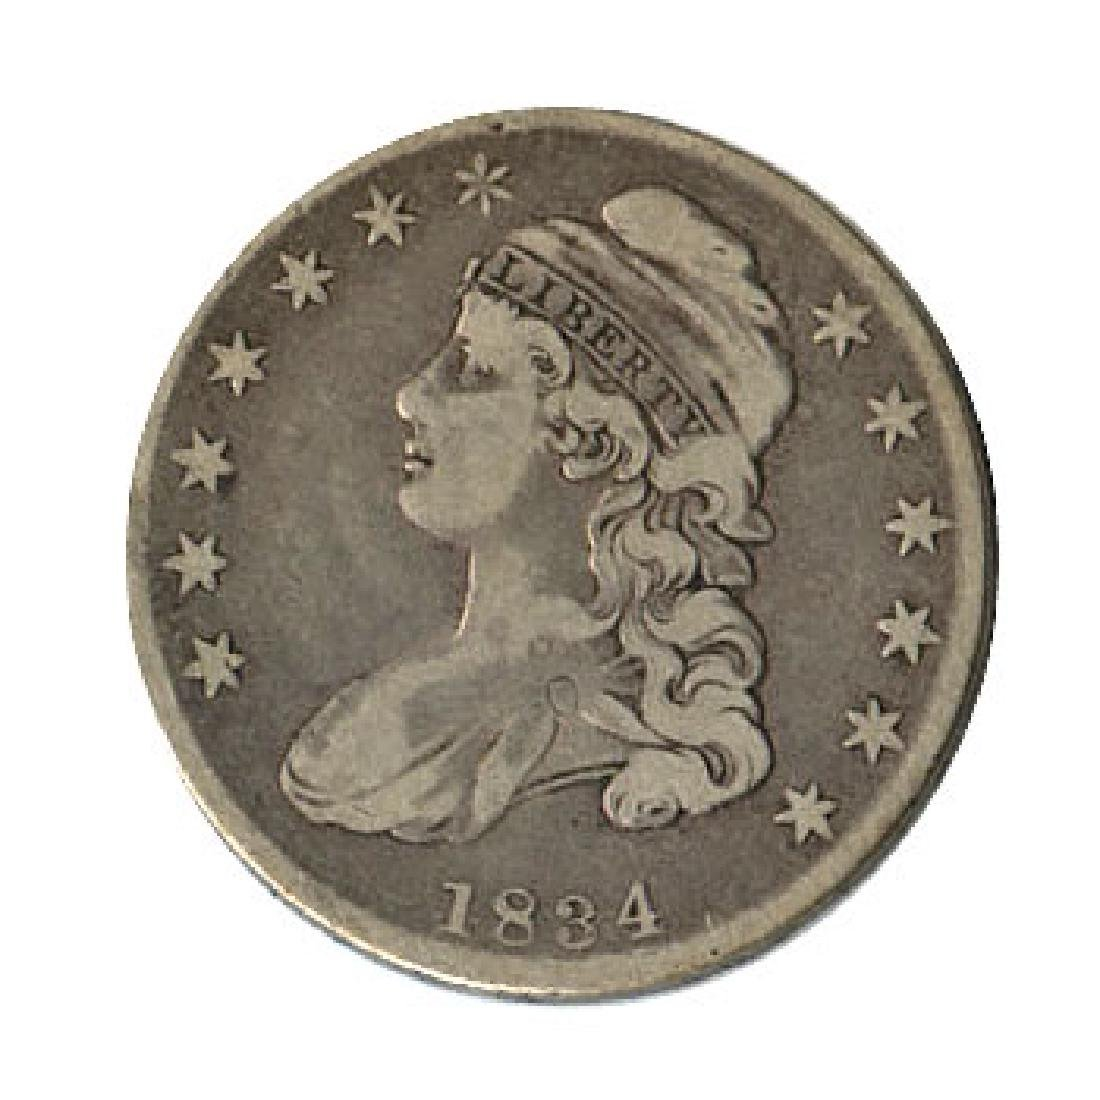 Early Type Capped Bust Half Dollar 1807-1836 G-VG